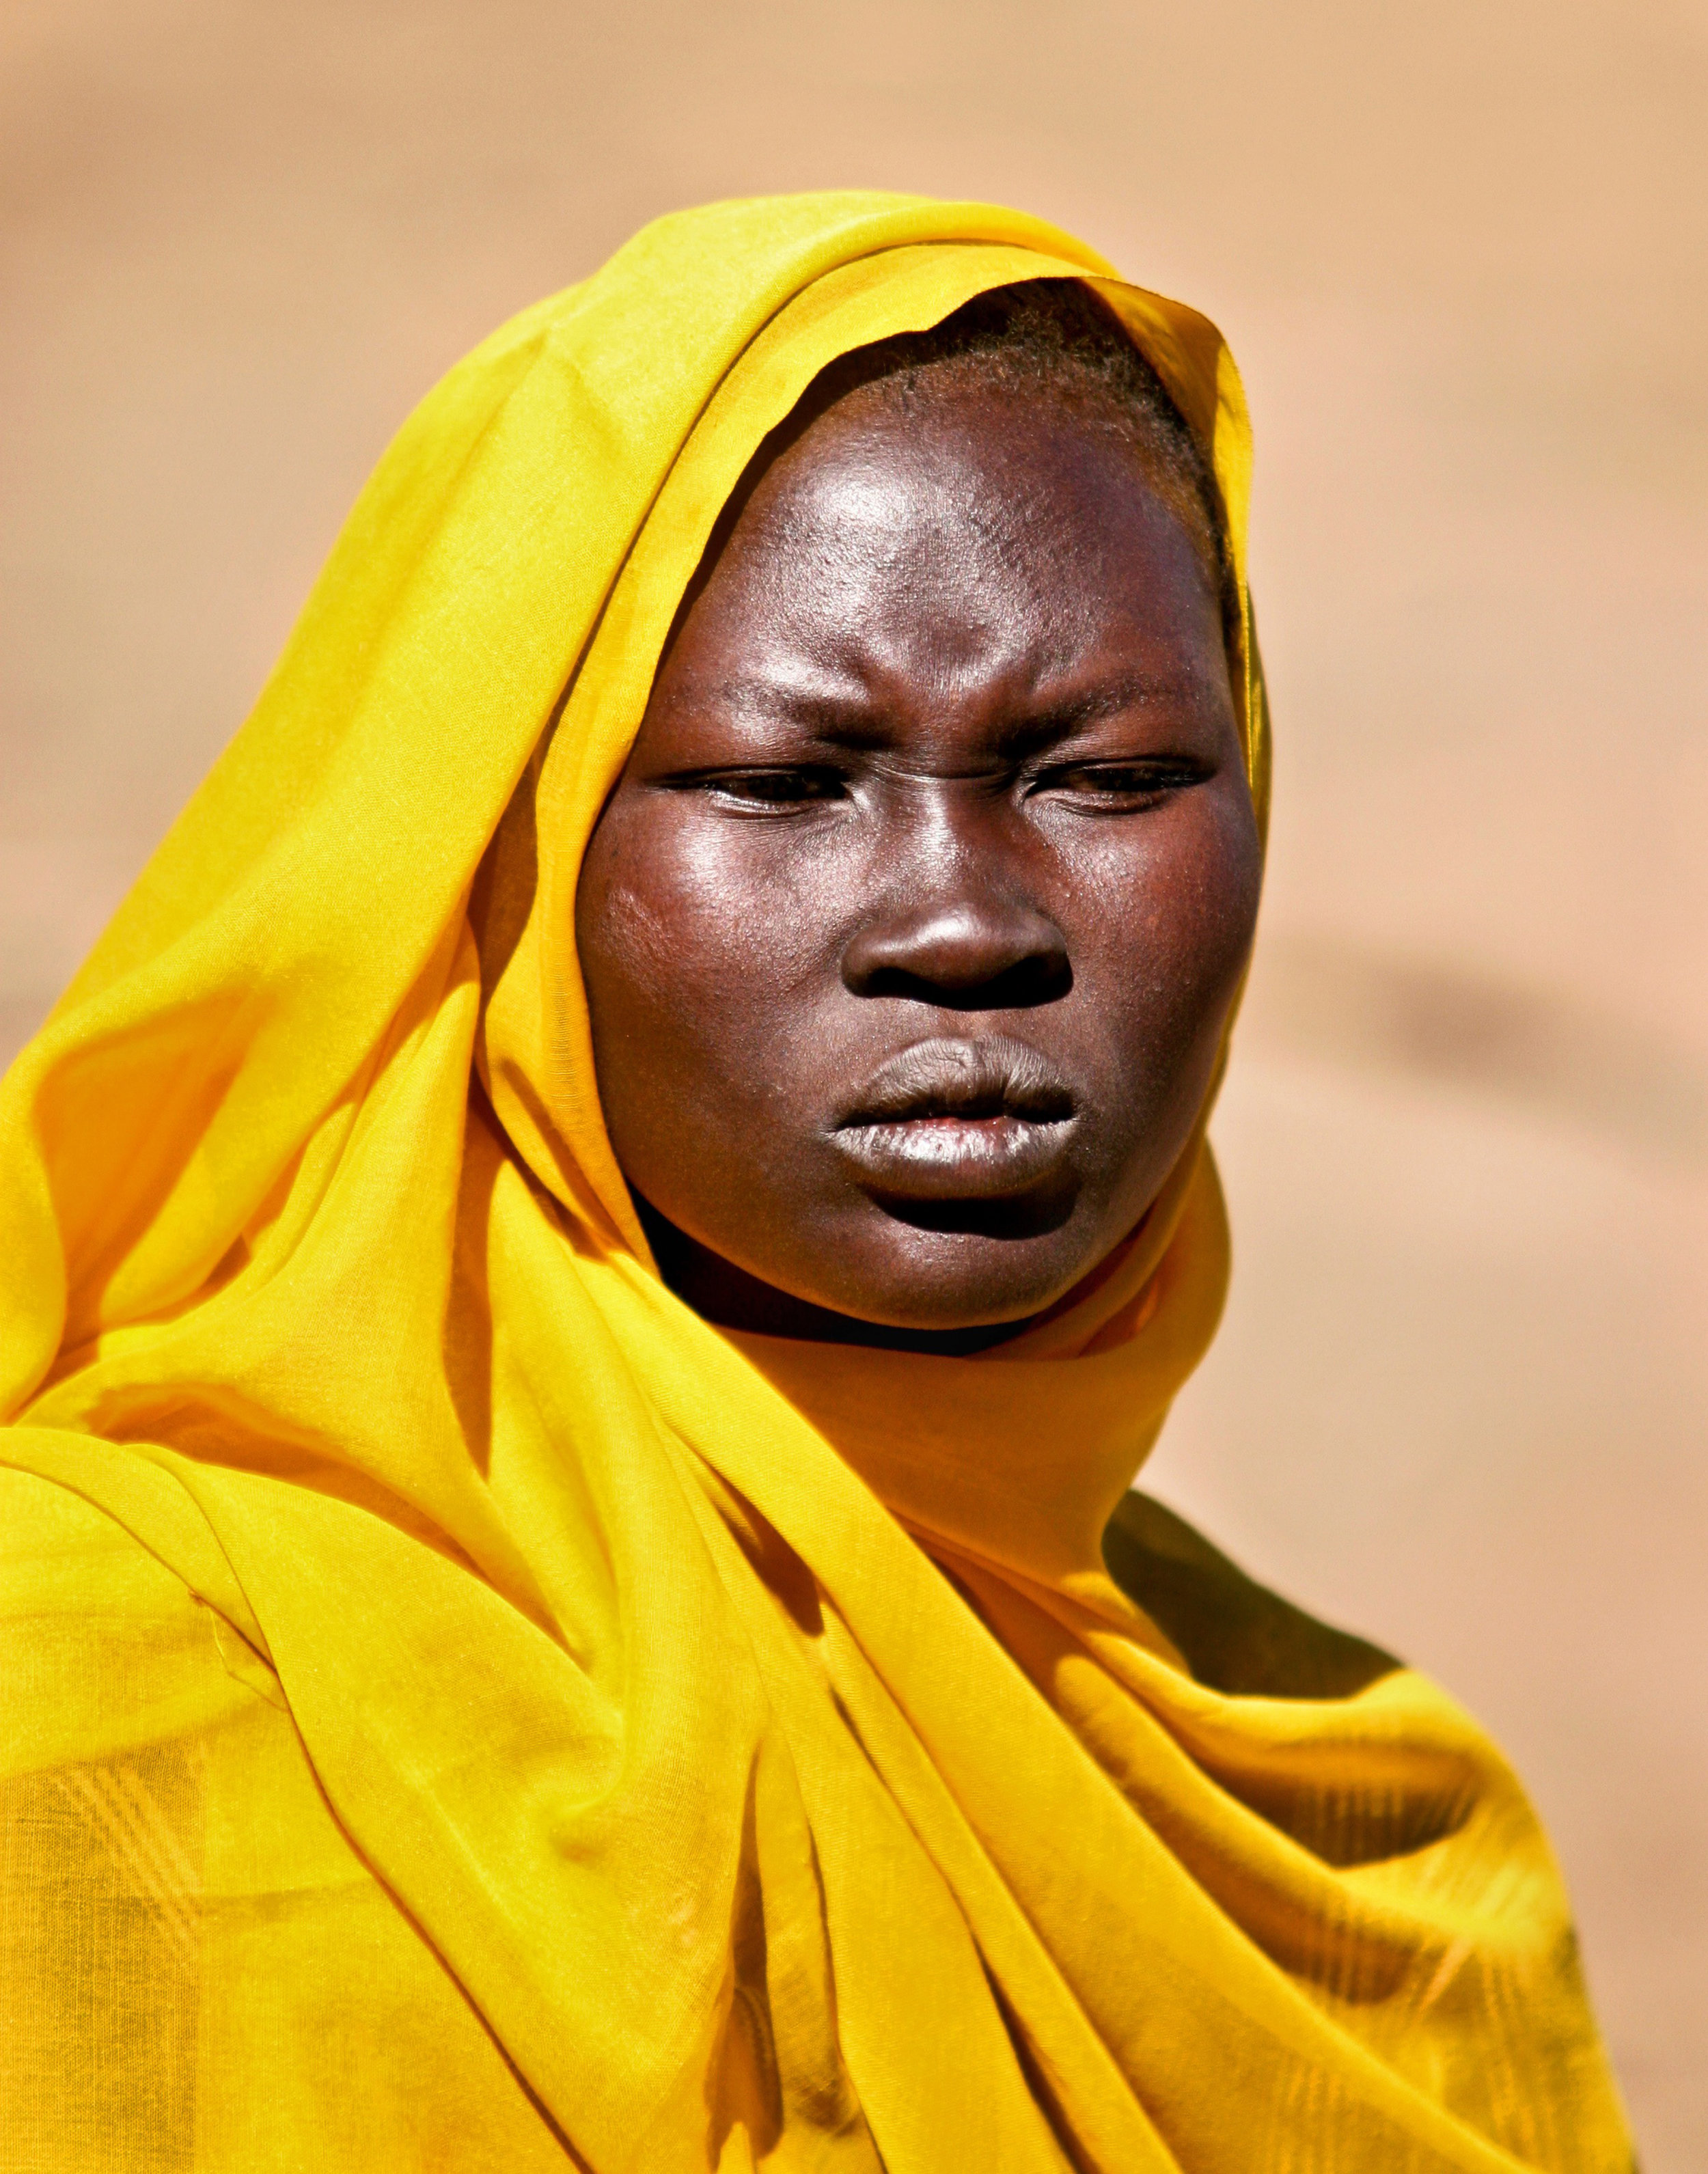 Woman in Sudan.  Photo courtesy Silent Images